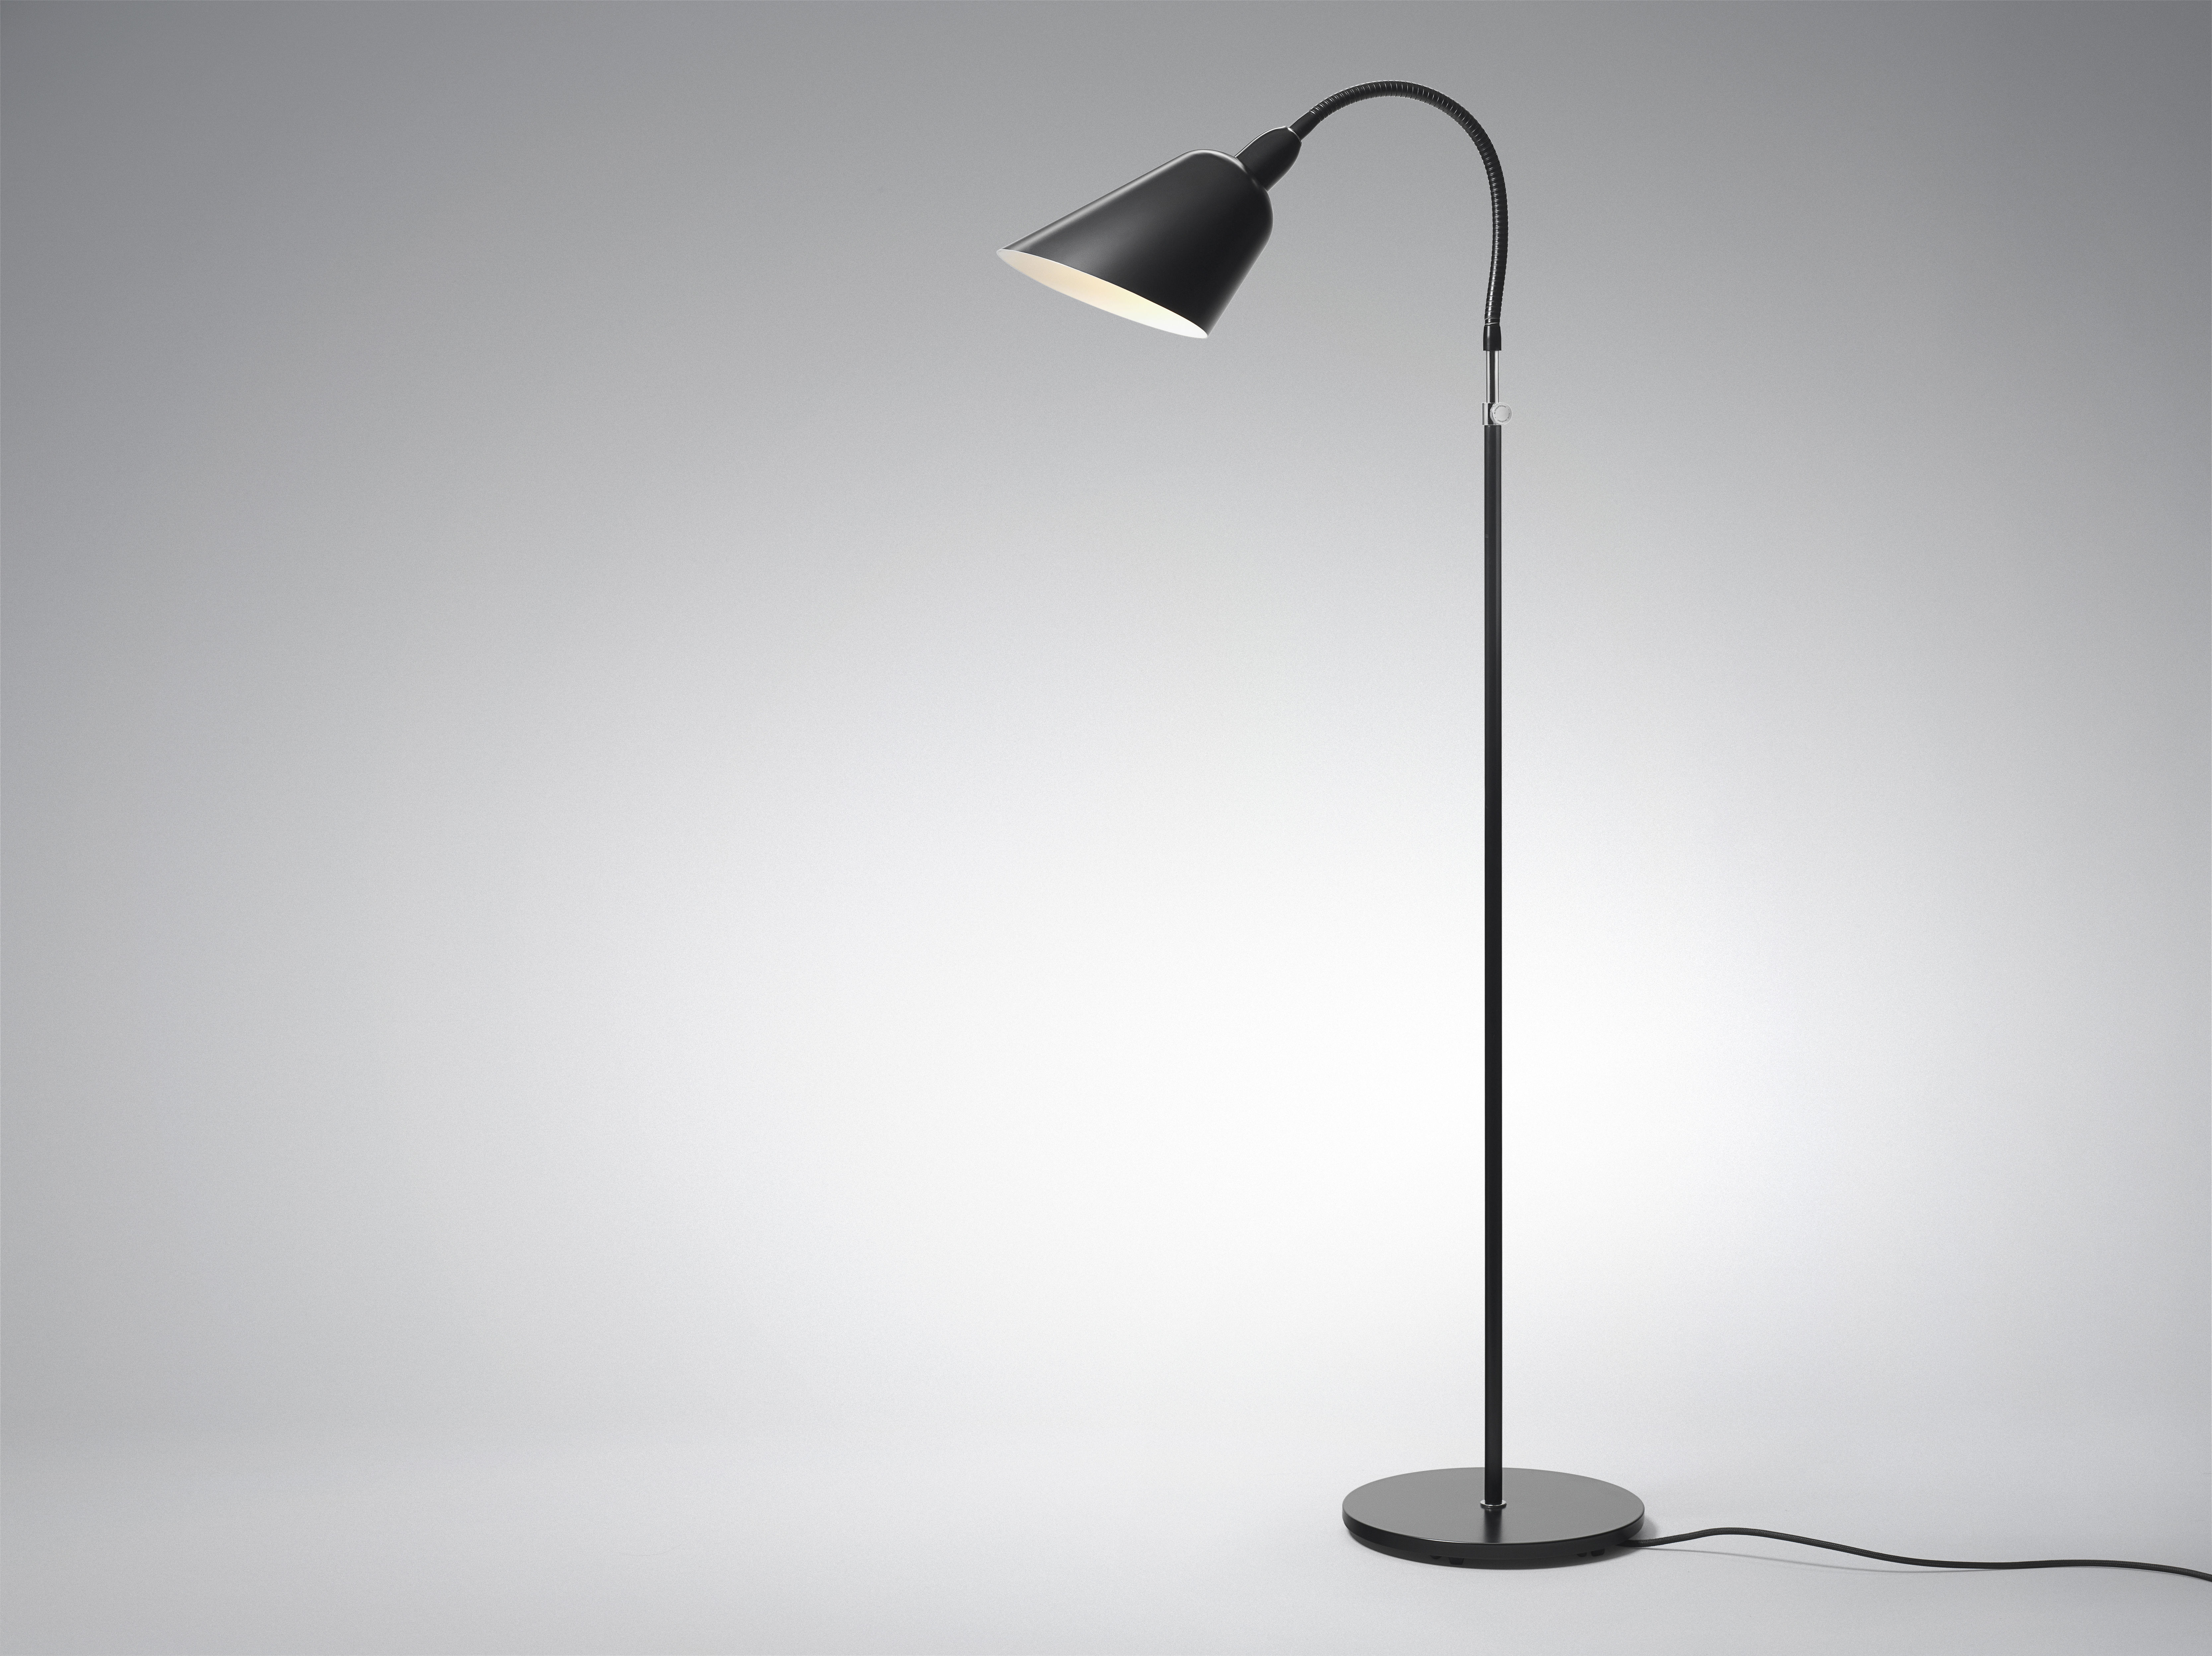 Lampada a stelo bellevue &tradition nero opaco h 112 made in